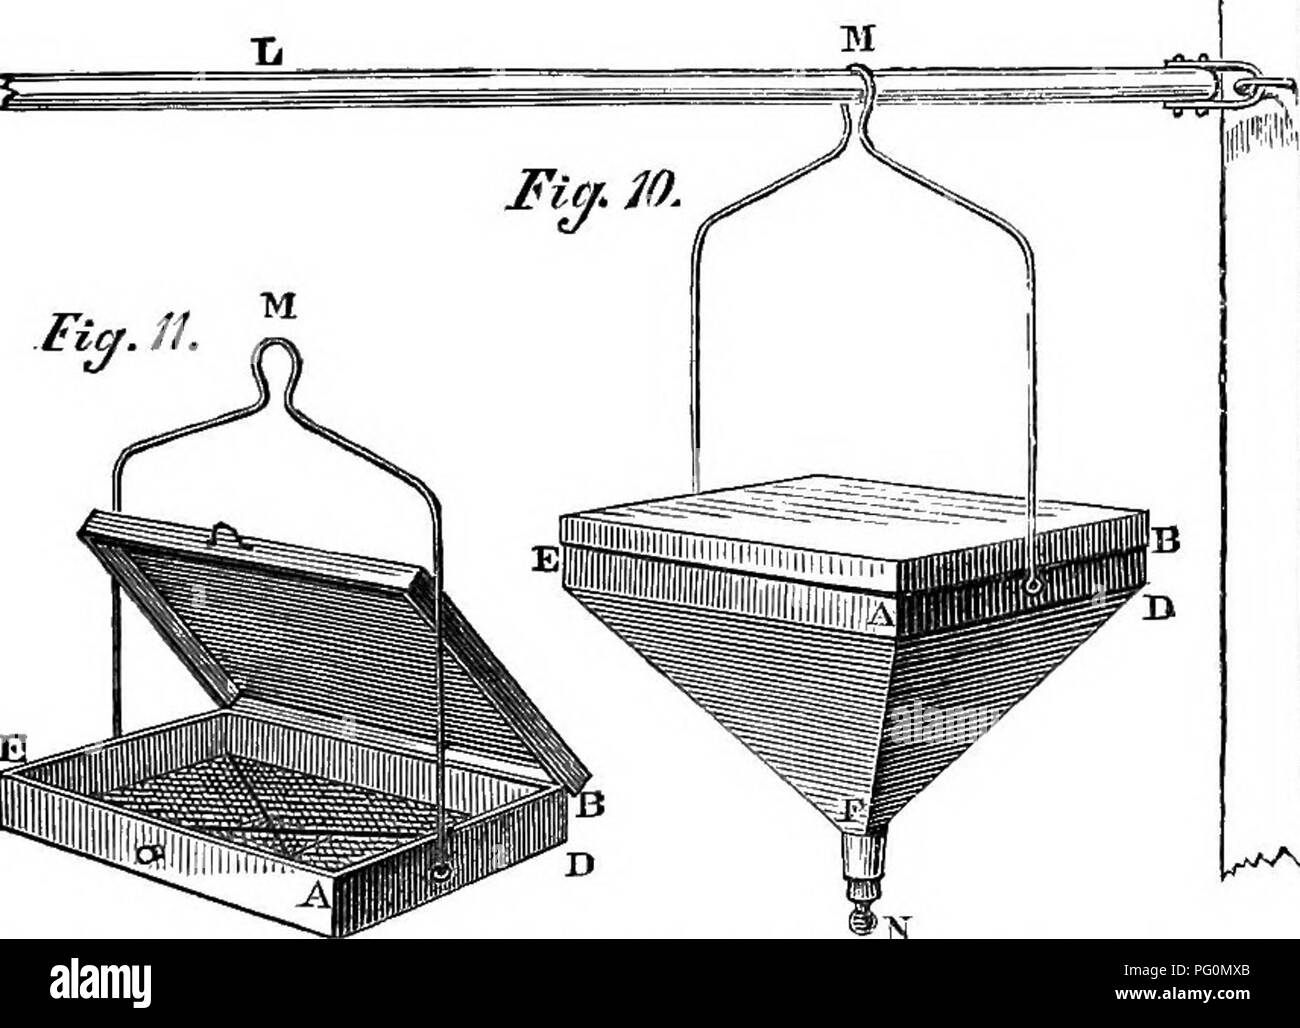 The Italian System Of Bee Keeping Bees Wiring Diagram For Bac 21 Chapter Iv Extbactiojf Hojey From Comb Simple Machine Used